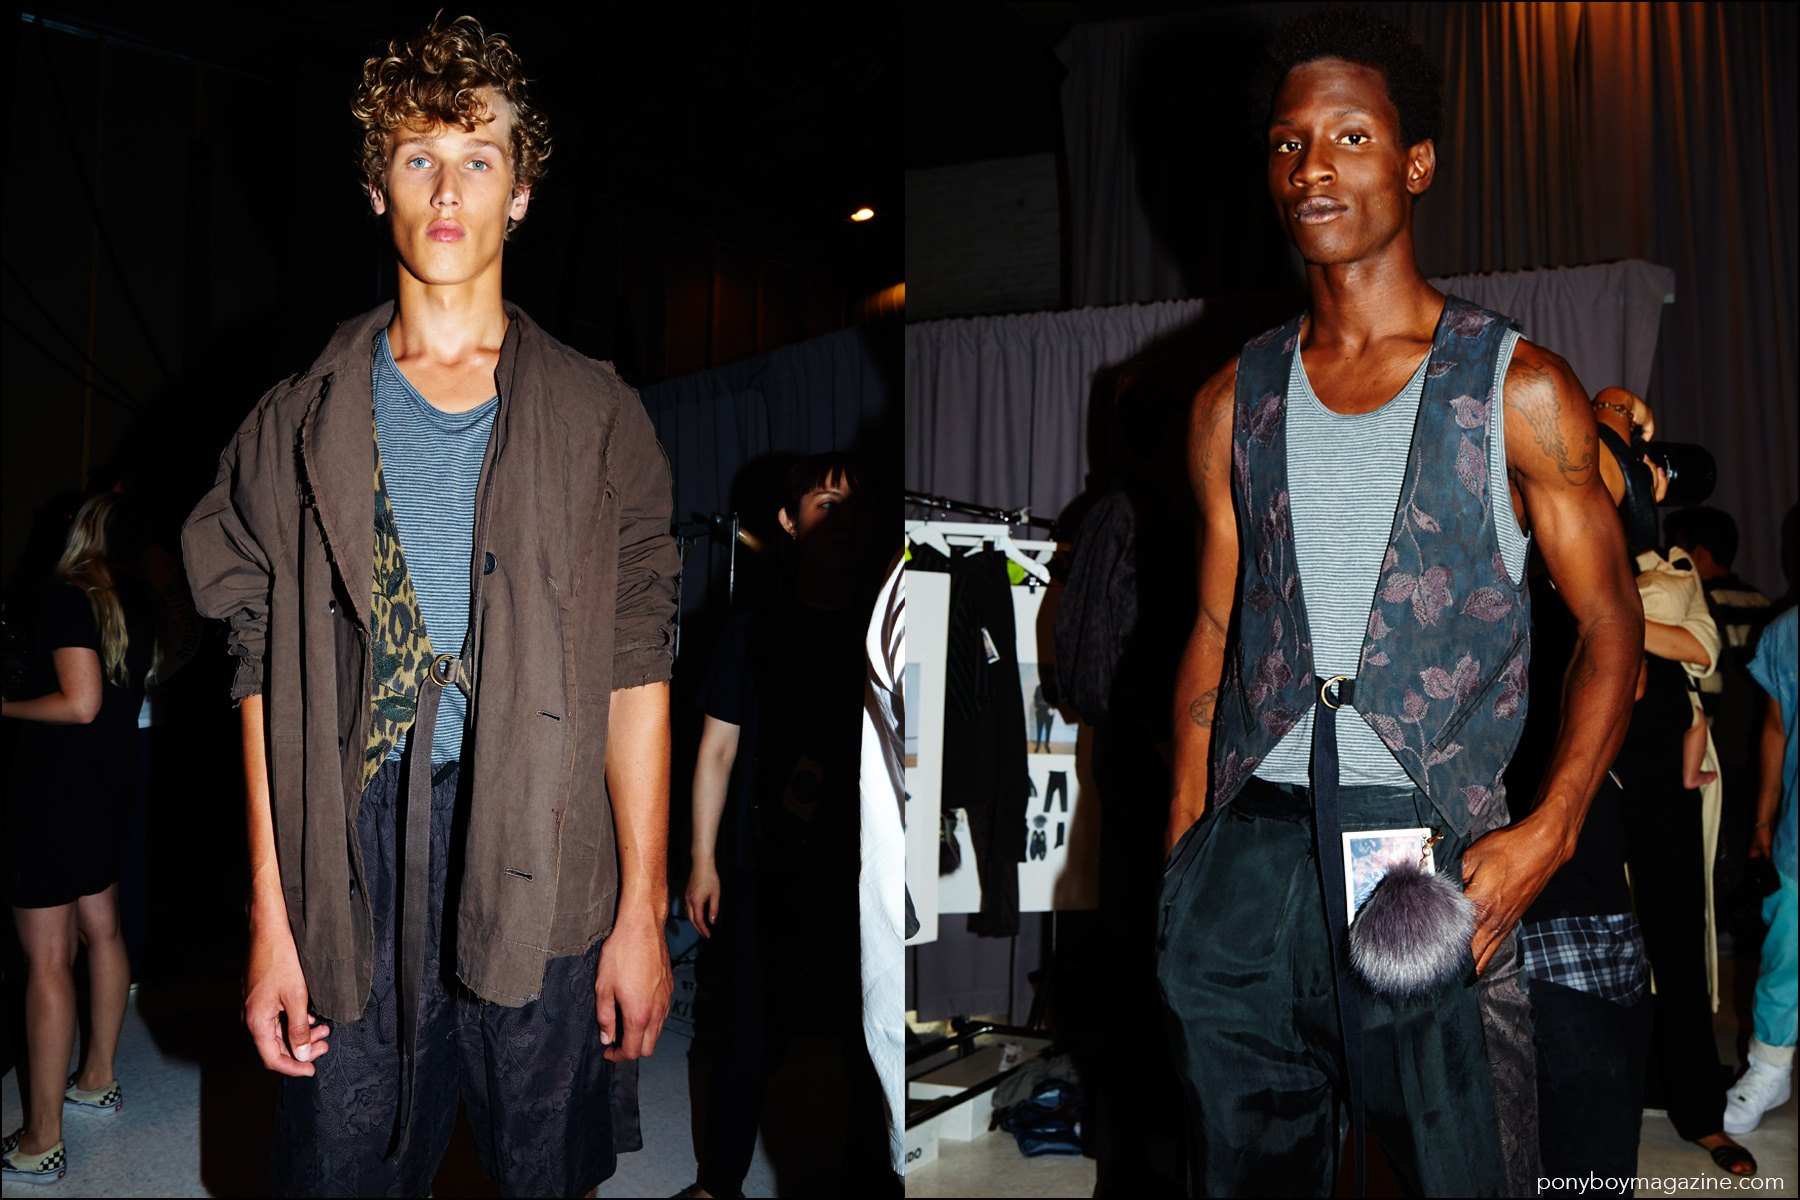 Models Bram Valbracht and Adonis Bosso photographed backstage at Robert Geller Spring/Summer 2017 menswear show. Photography by Alexander Thompson for Ponyboy magazine NY.